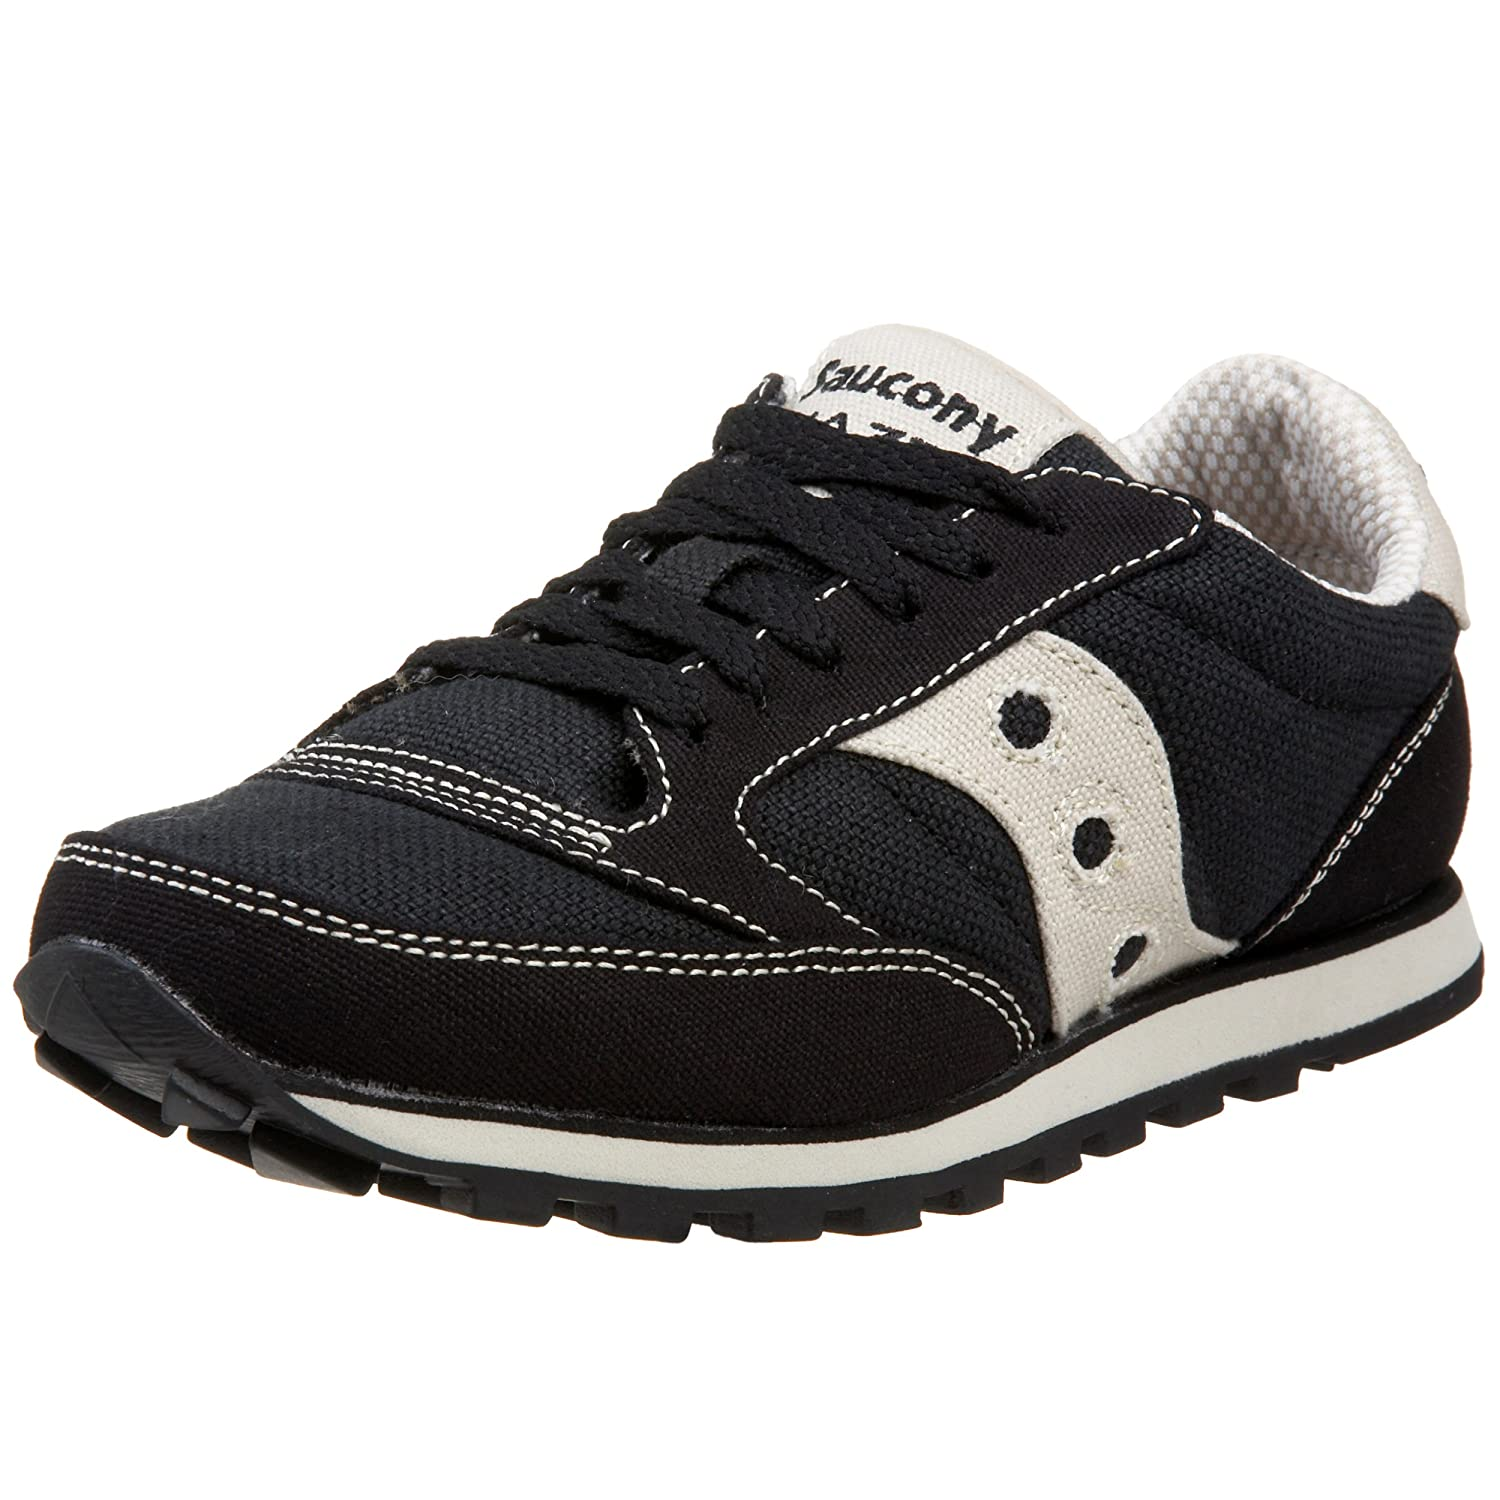 Saucony Originals Women's Jazz Low Pro Vegan Retro Sneaker B000OUZ7F4 7.5 B(M) US|Black